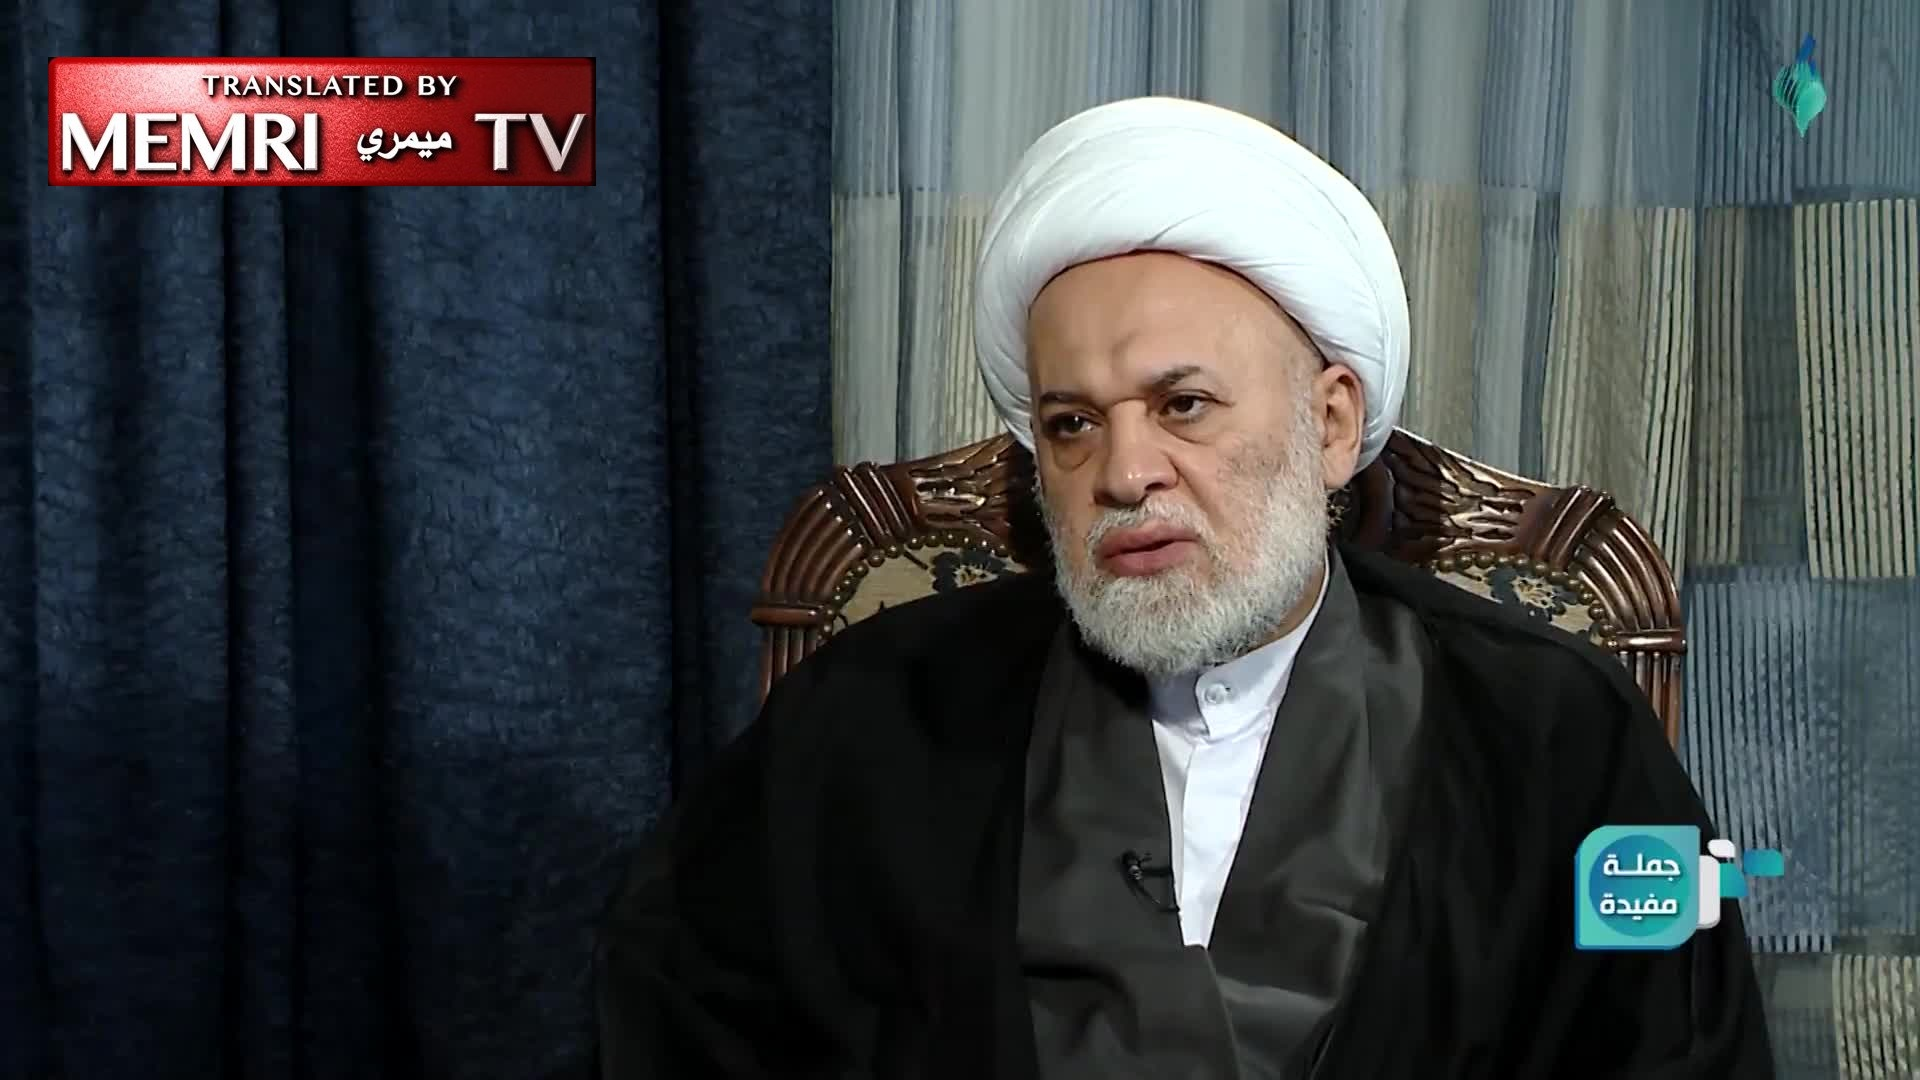 Iraqi Politician Sheikh Jalal Al-Din Al-Saghir: Khamenei Is Our Source of Authority, We Are Committed to the Iraqi Constitution because He Authorized It